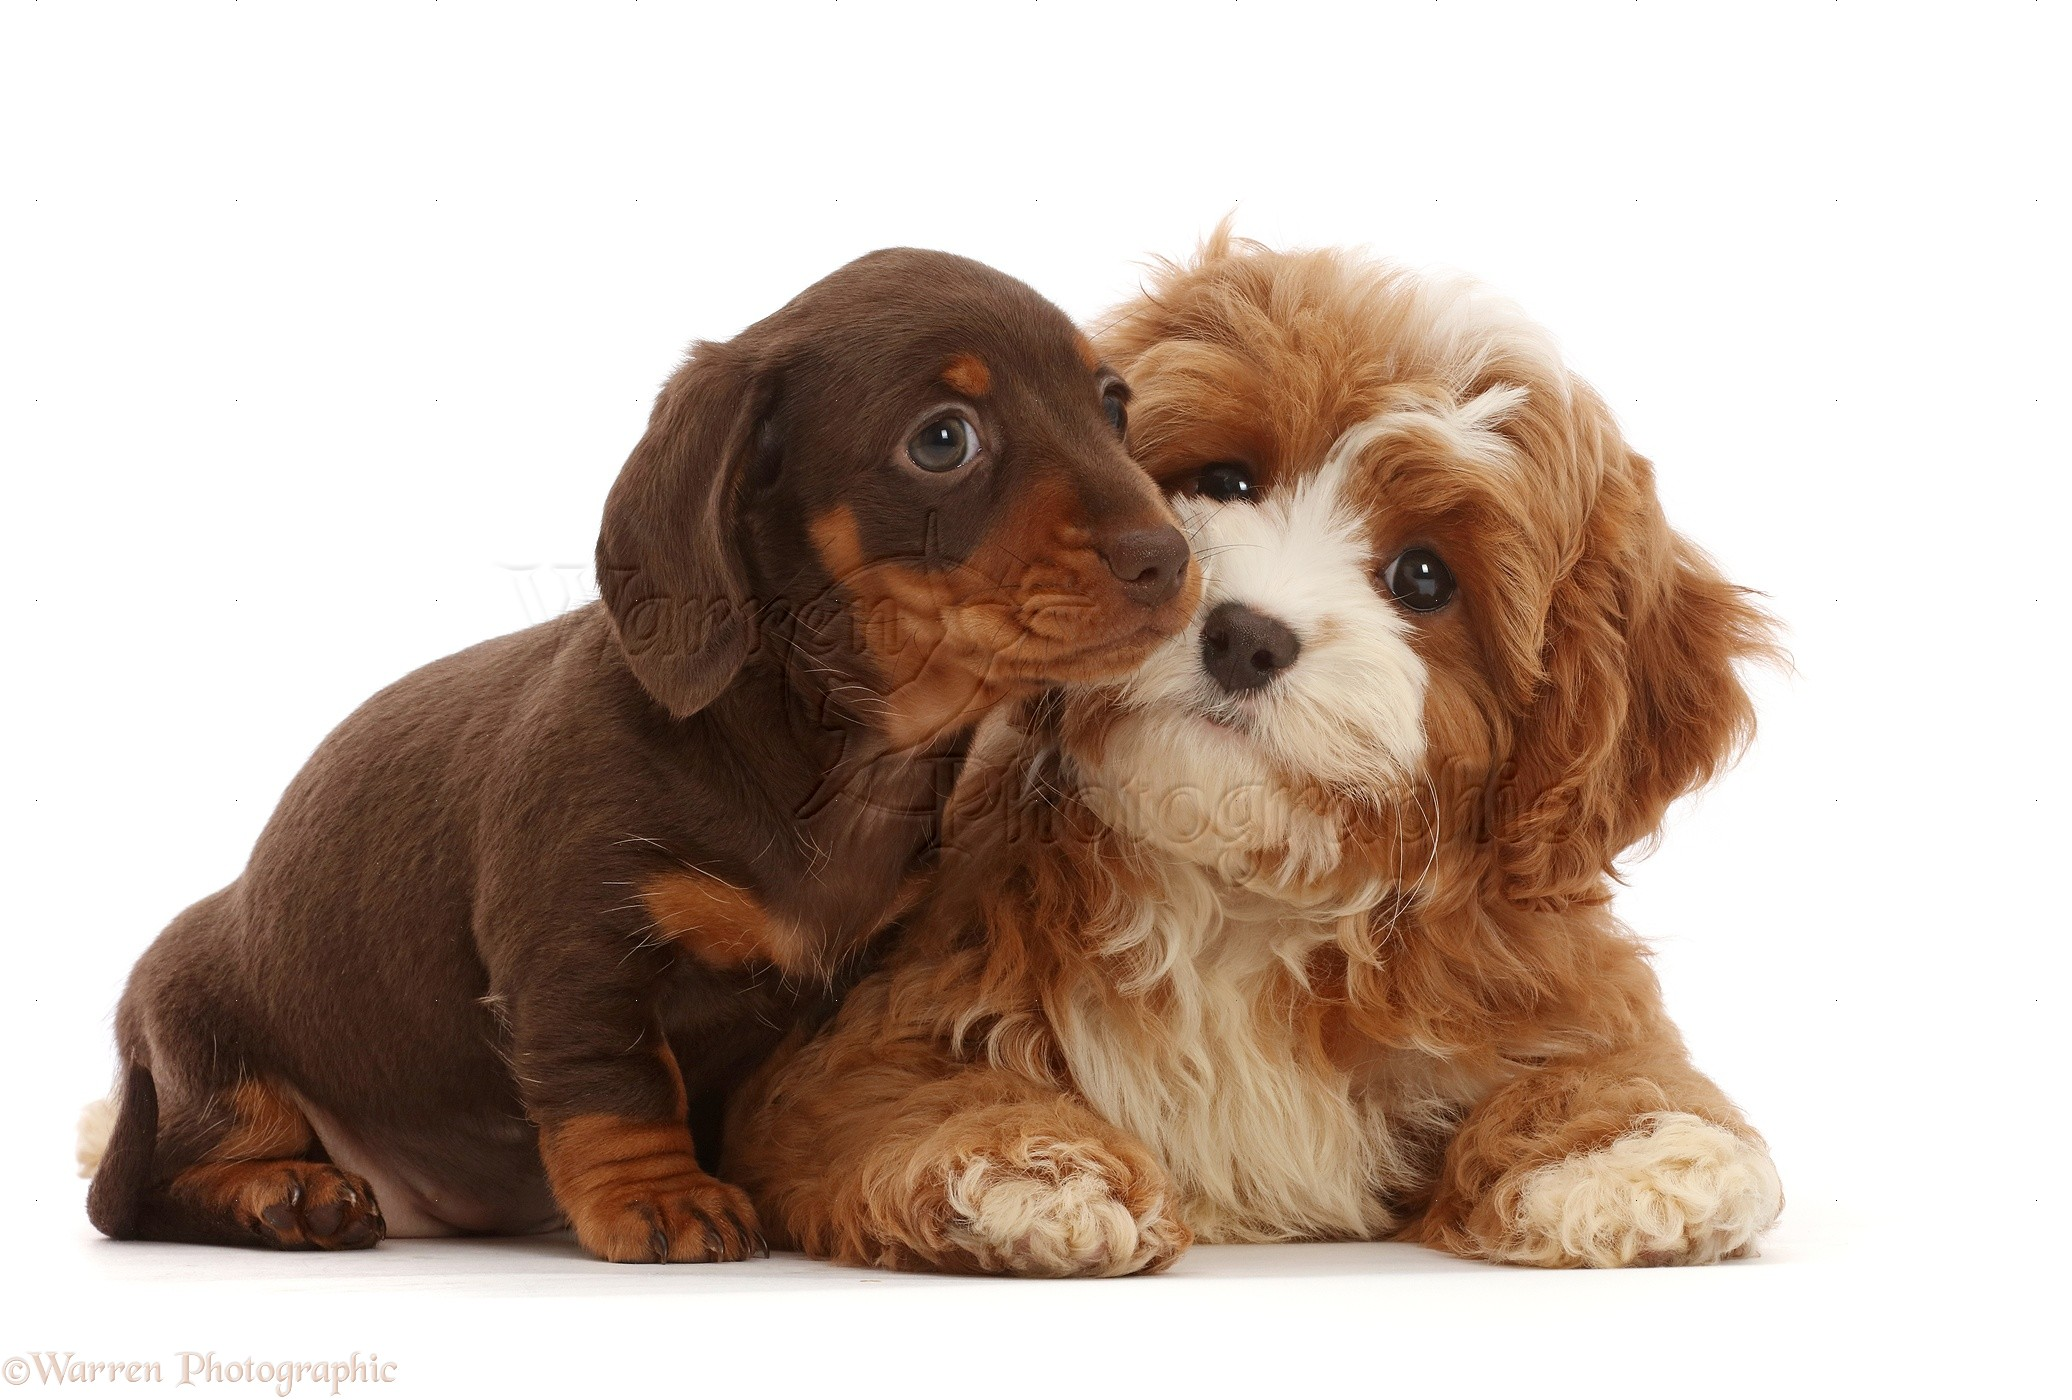 Dogs Chocolate Dachshund Puppy With Cavapoo Puppy Photo Wp47185